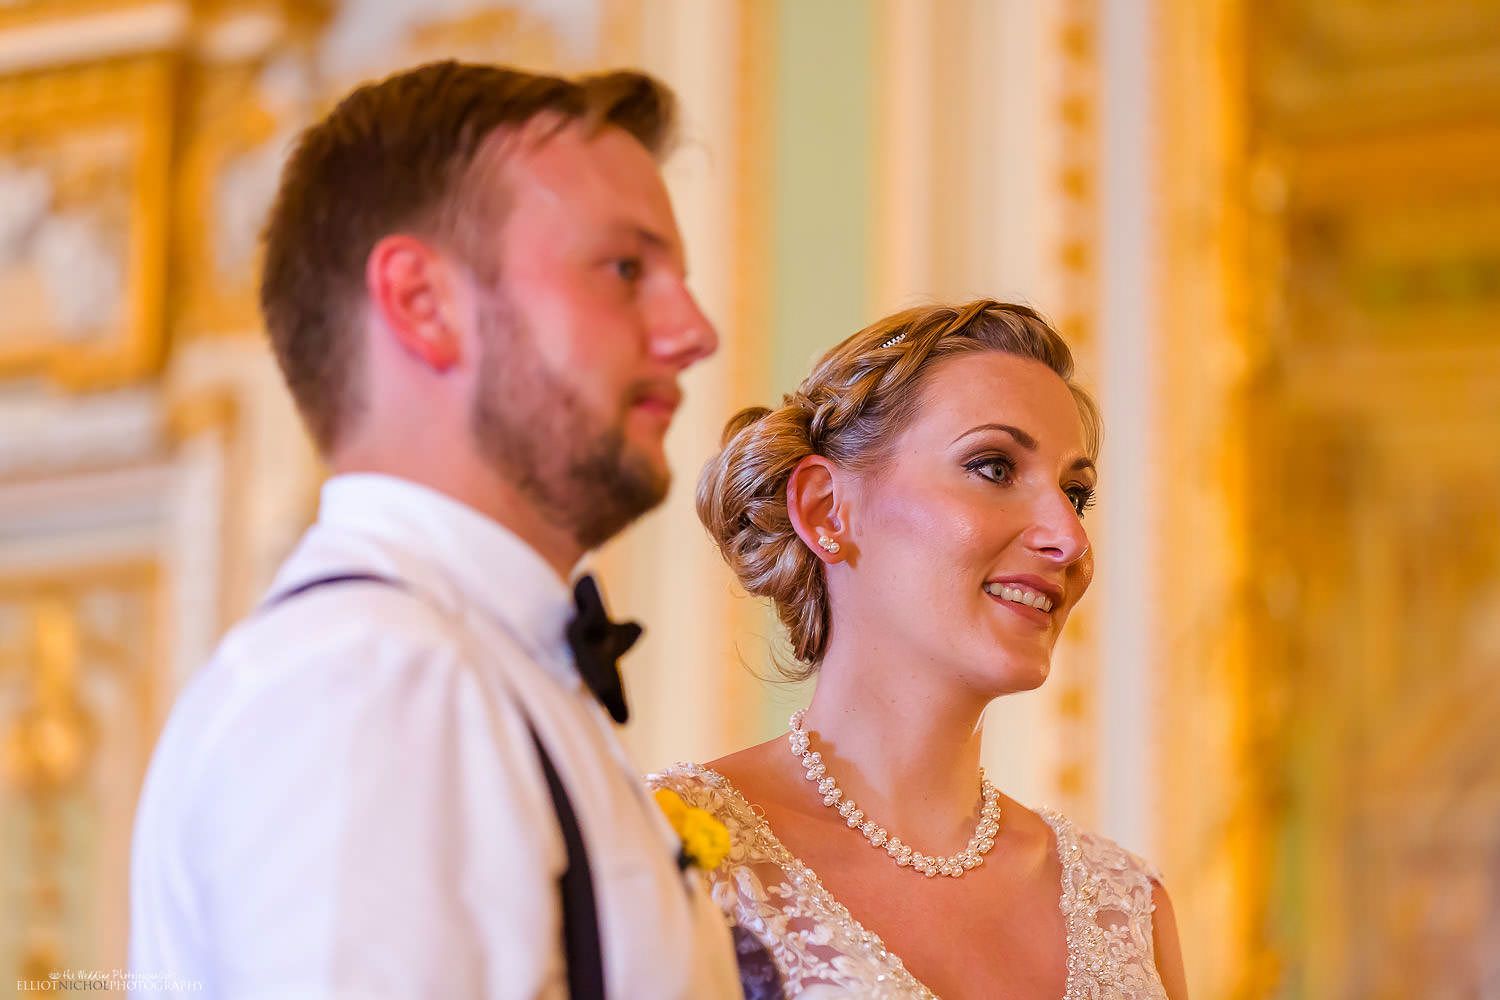 Bride and groom during their wedding ceremony at the Palazzo Parisio.